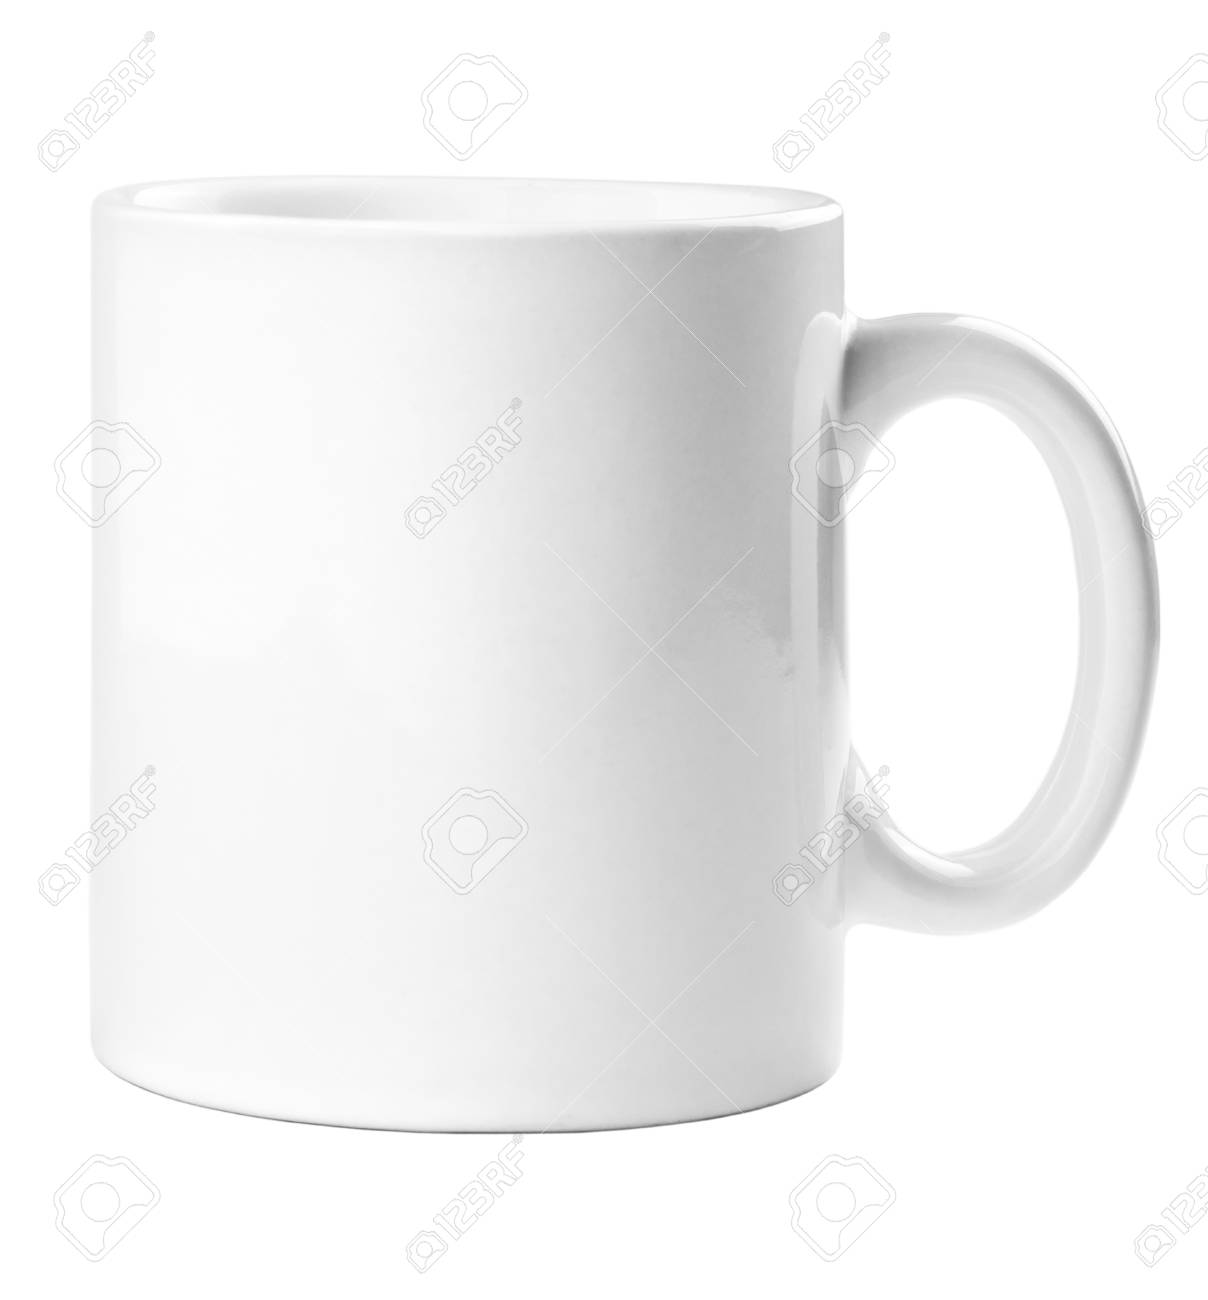 White mug empty blank for coffee or tea isolated on white background Stock Photo - 17890209